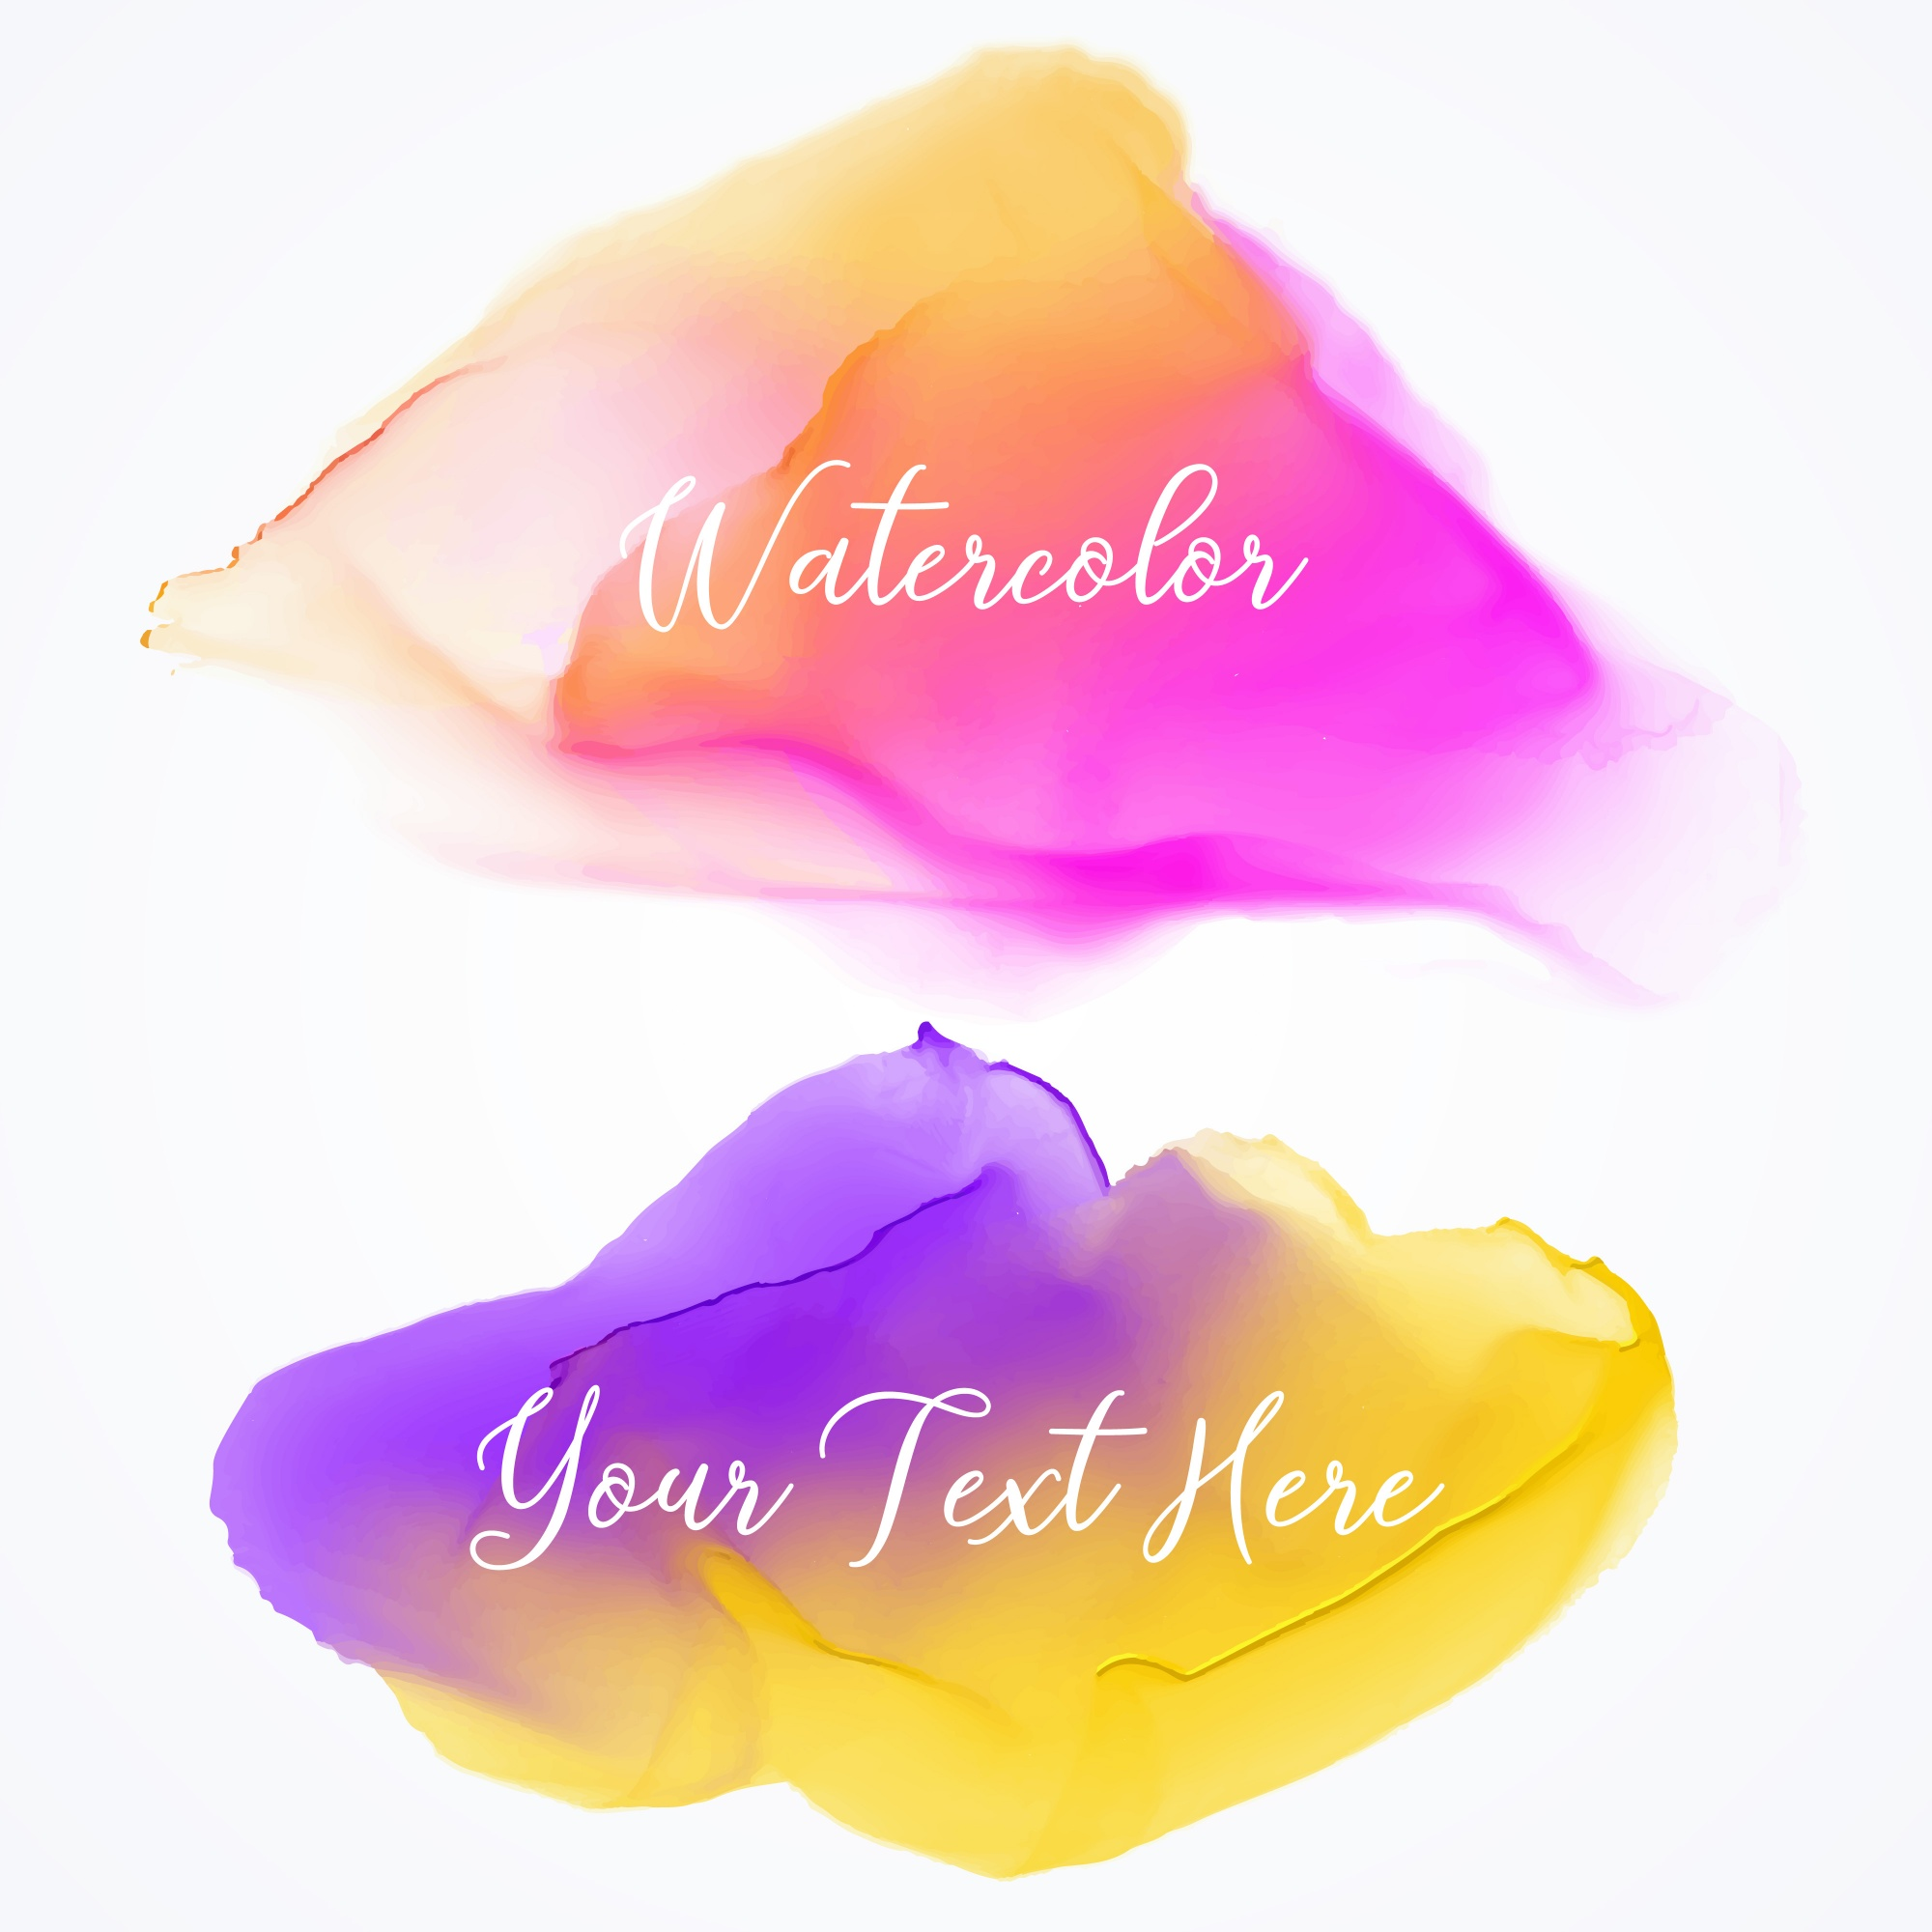 Two colorful watercolor textures